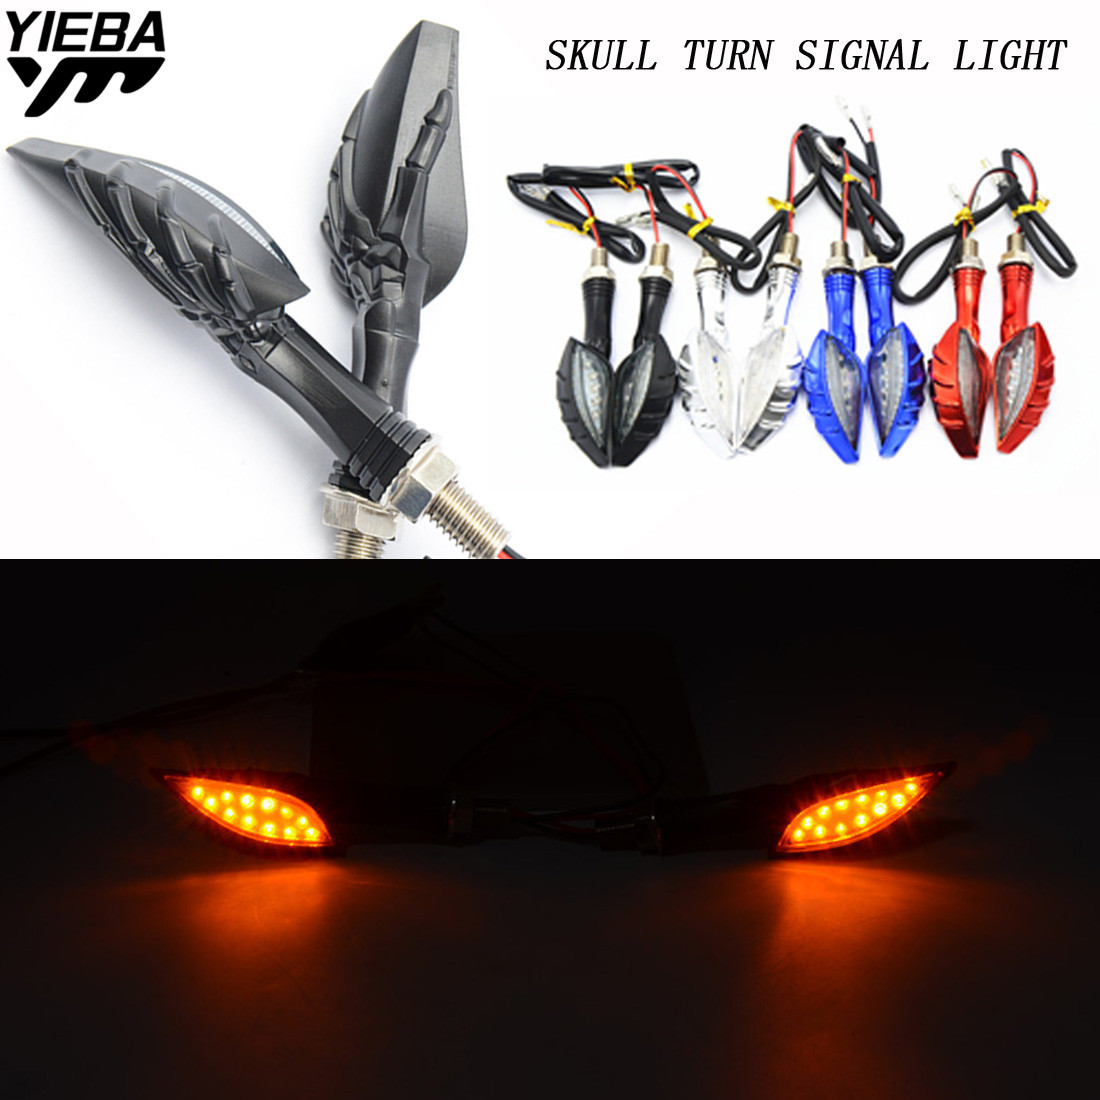 Motorcycle signals light Super bright waterproof LED Steering light FOR honda CBR 1000 RR 1000RR CBR1000RR Cbr 600 yzf r3 MT07 motorcycle parts led tail brake light turn signals for honda cbr 600rr cbr1000rr rr fireblade smoke